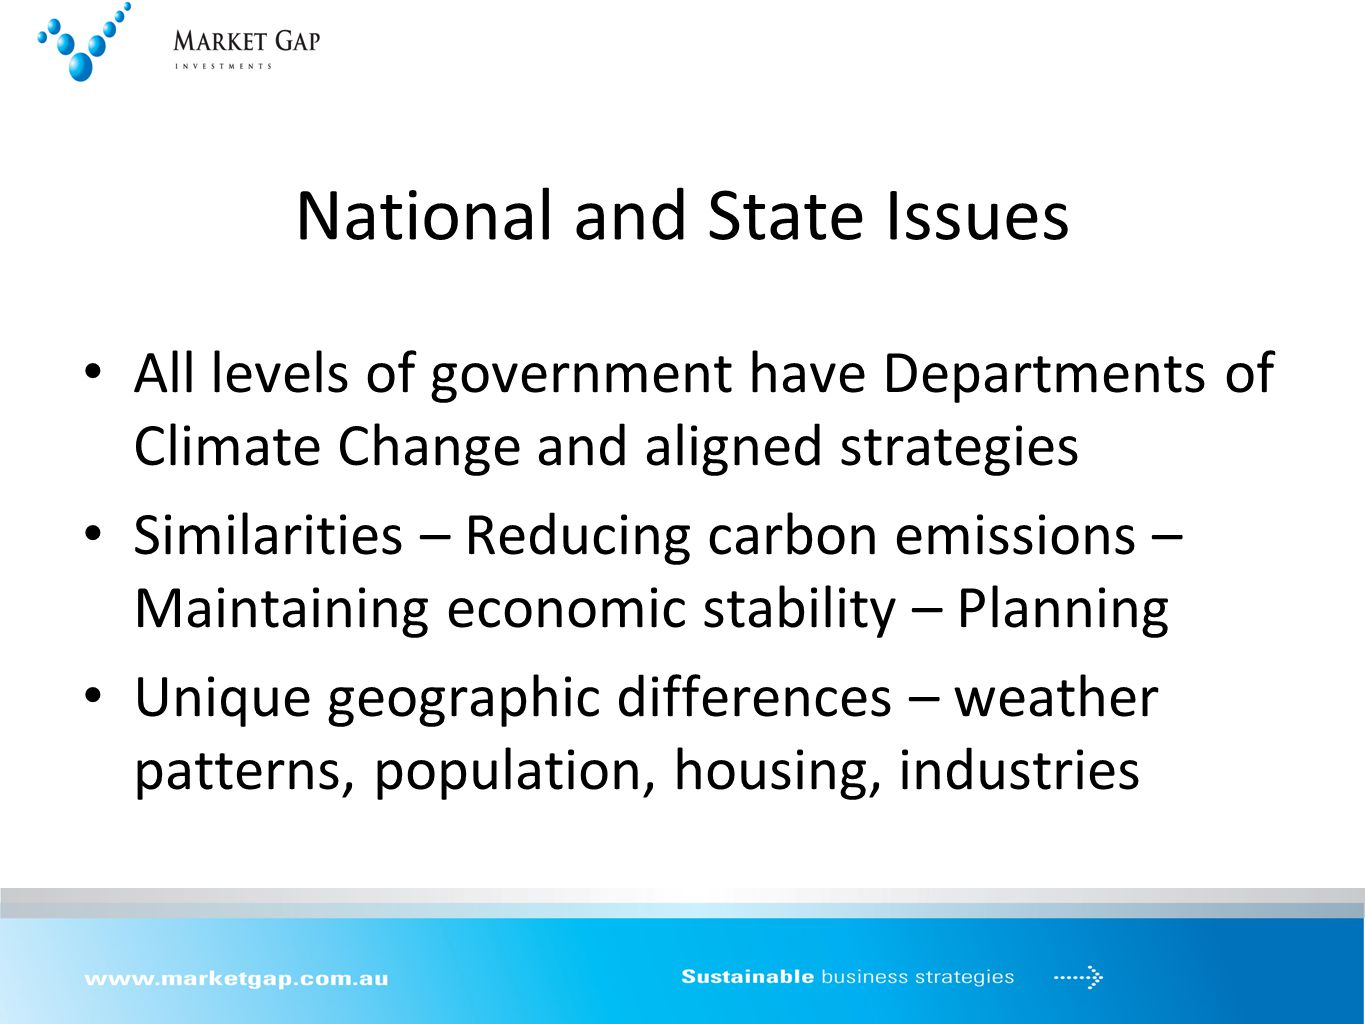 National and State Issues All levels of government have Departments of Climate Change and aligned strategies Similarities – Reducing carbon emissions – Maintaining economic stability – Planning Unique geographic differences – weather patterns, population, housing, industries